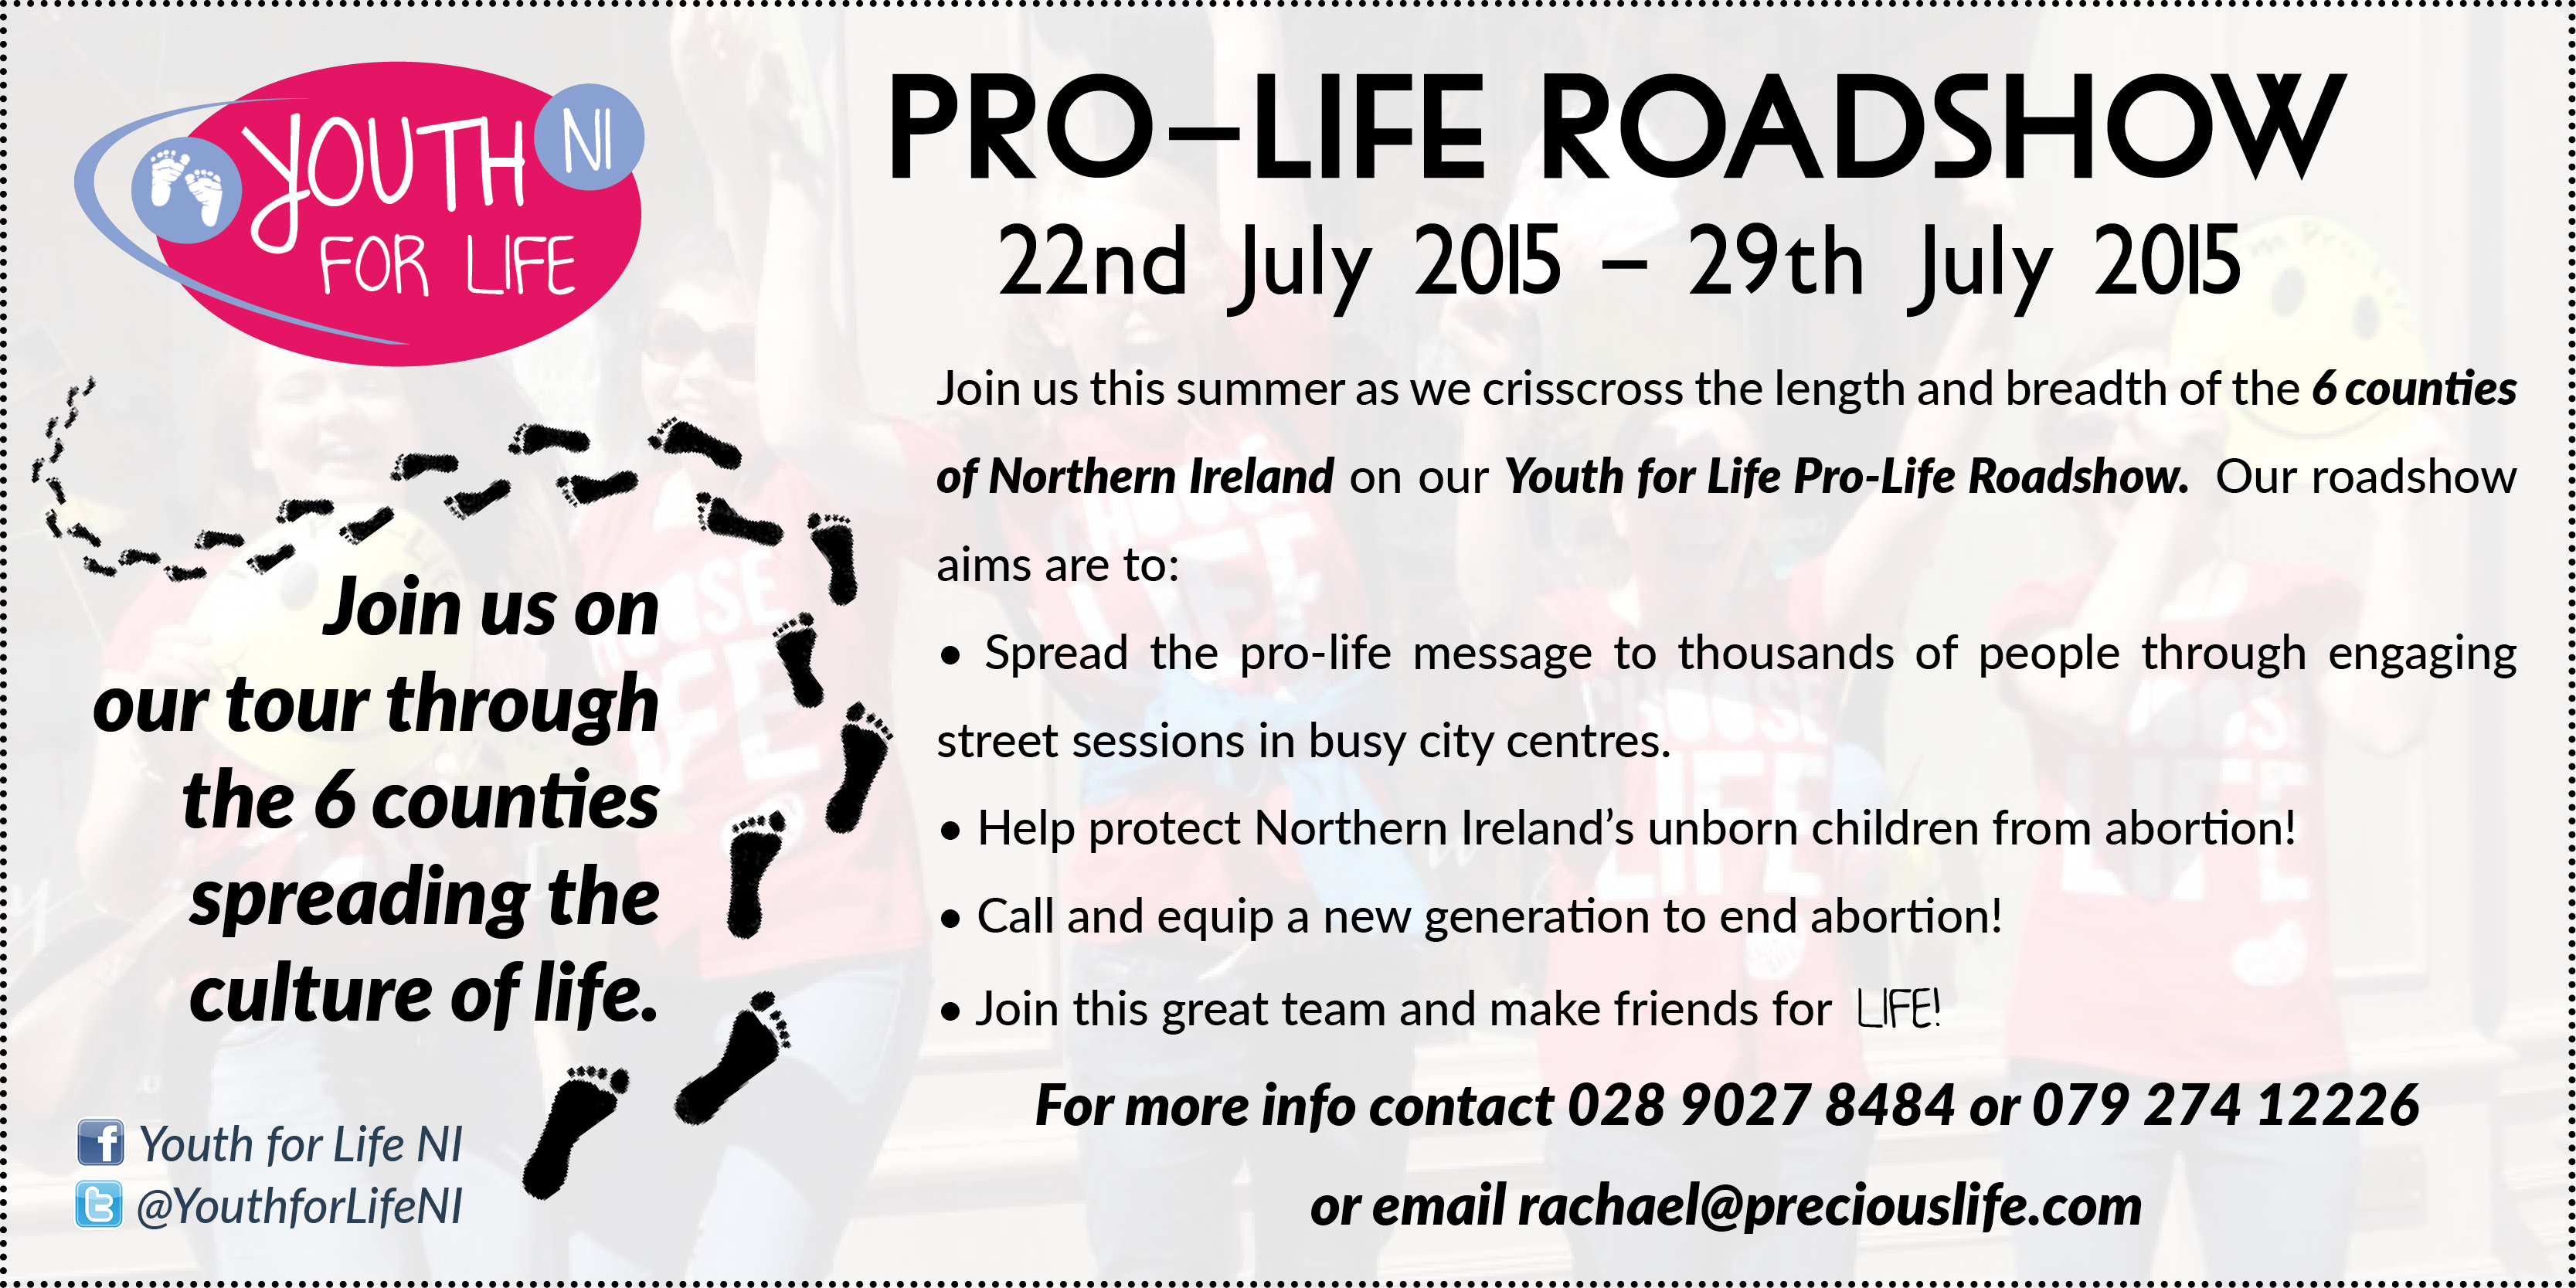 Youth for Life PRO-LIFE ROADSHOW